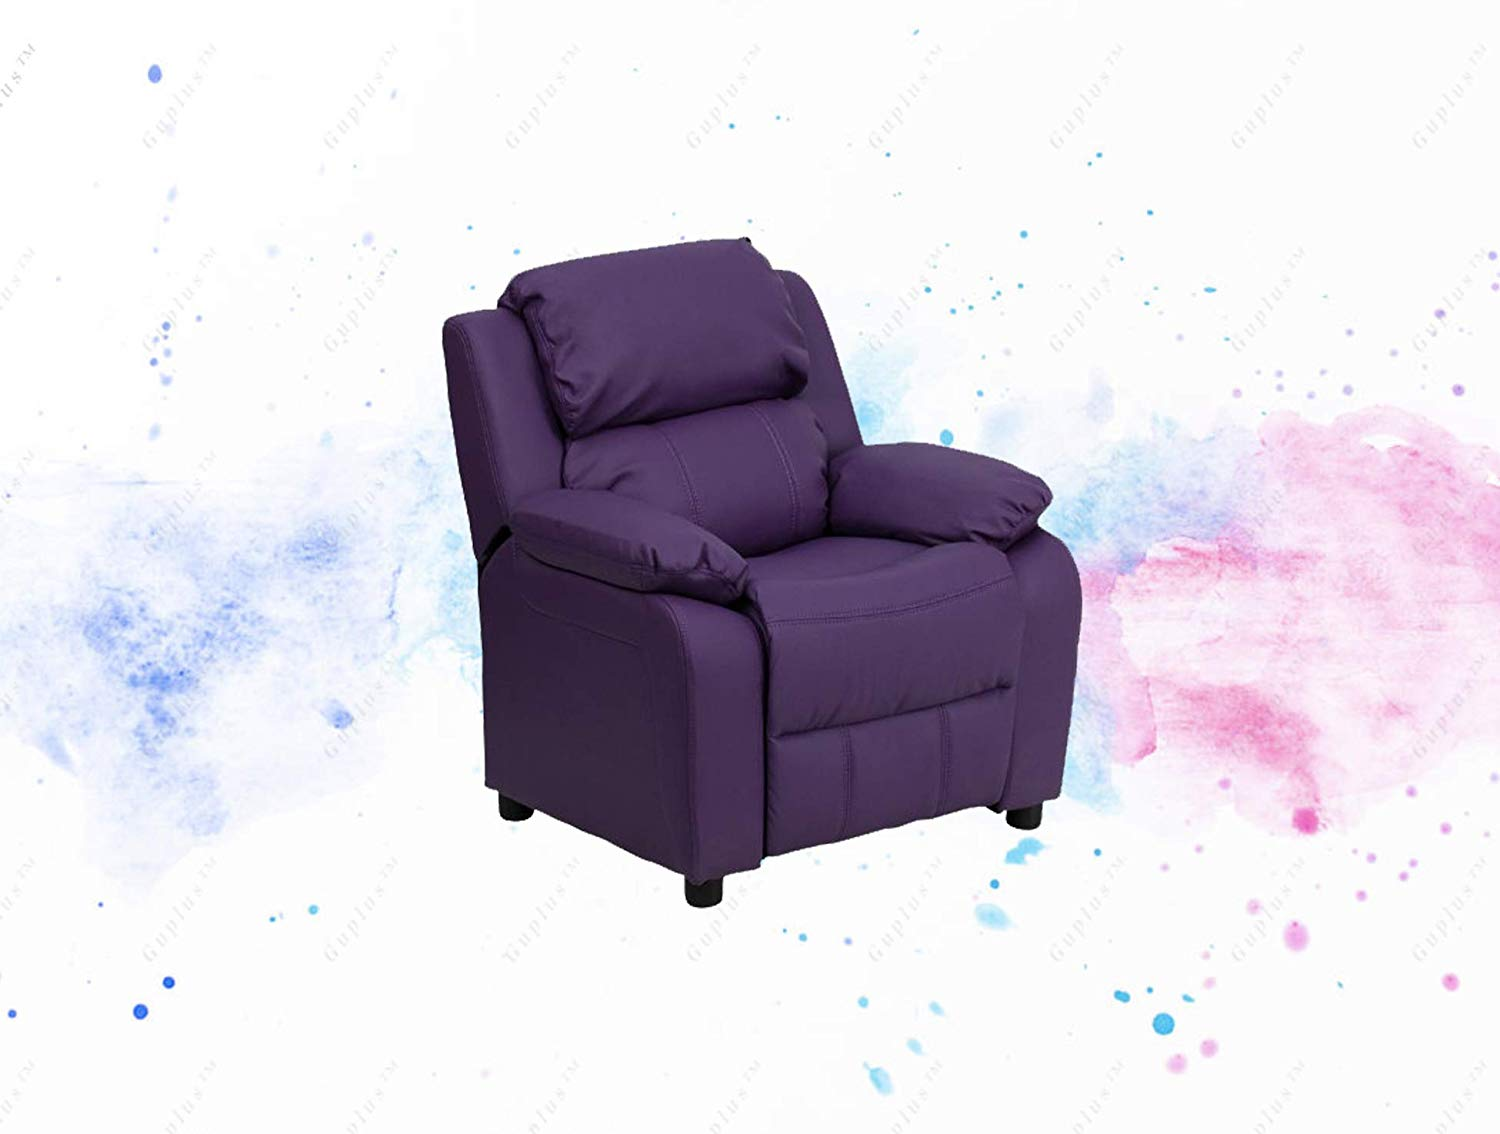 Purple Vinyl Kids Recliner with Storage Arms Child Sized Recliner Plush Padding for Extra Comfort Additional Headrest Cover